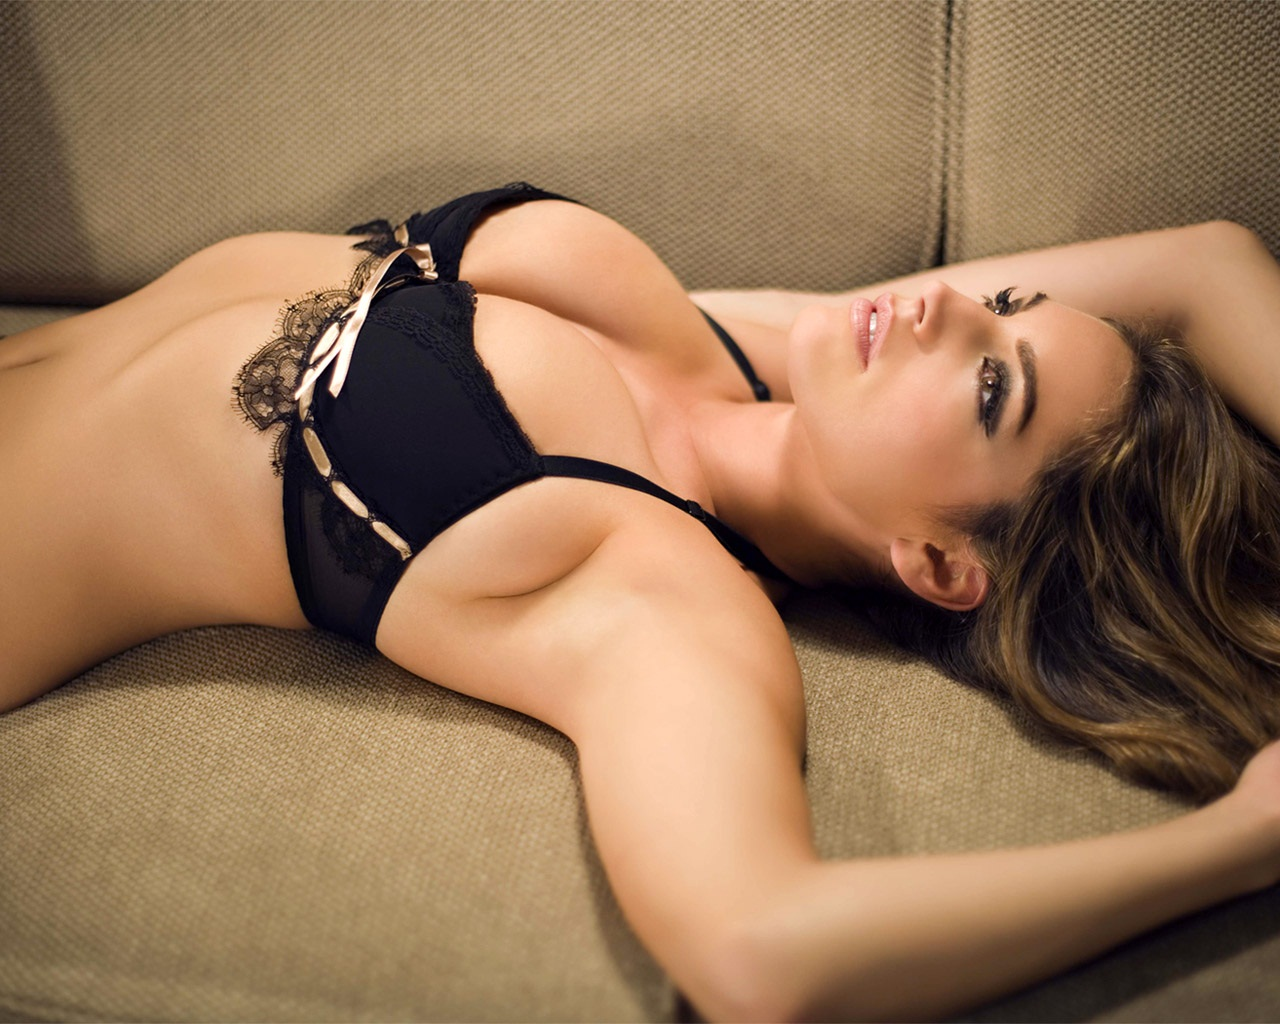 hot+and+sexy+Lingerie+Model+Laying+on+sofa+looks+erotic+in+black+bikini hot, sexy and erotic lingerie model in black bikini on bed looks really hot ...